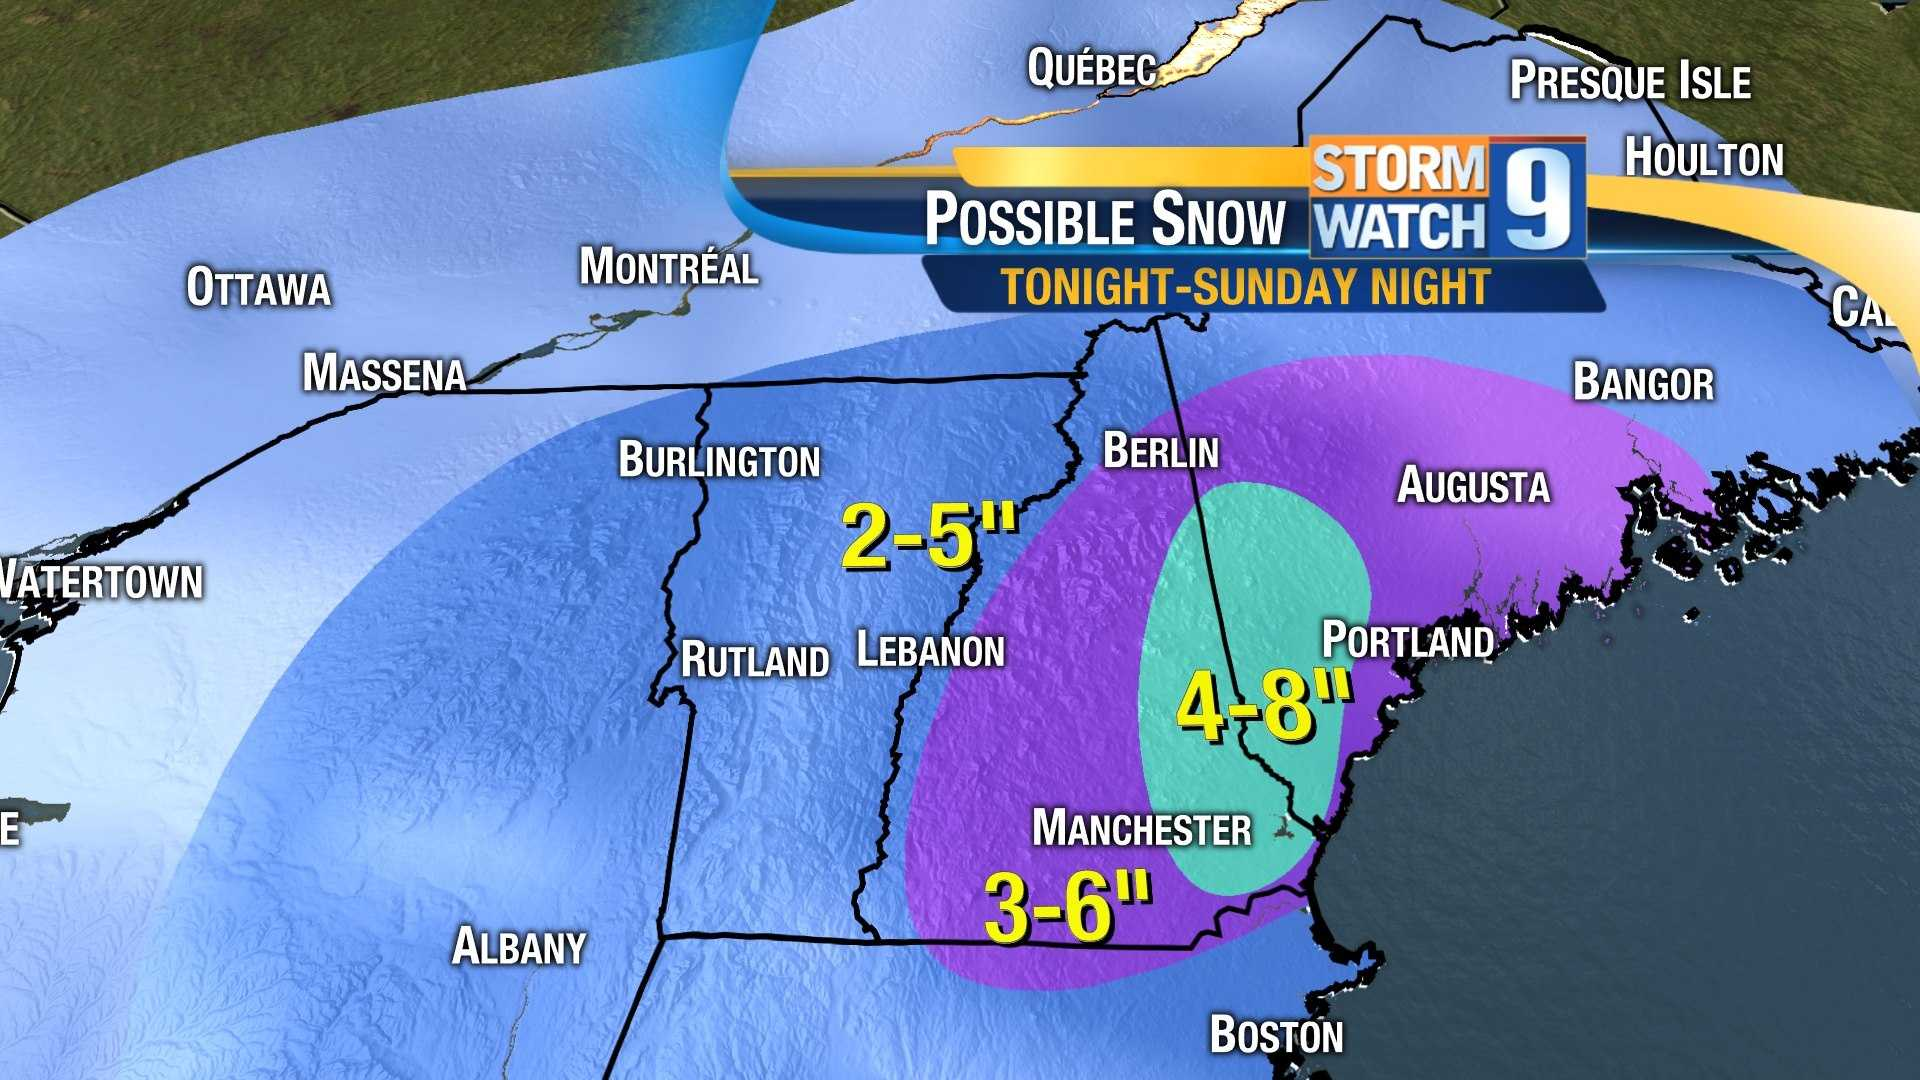 Latest snow projection for Feb. 23 weekend